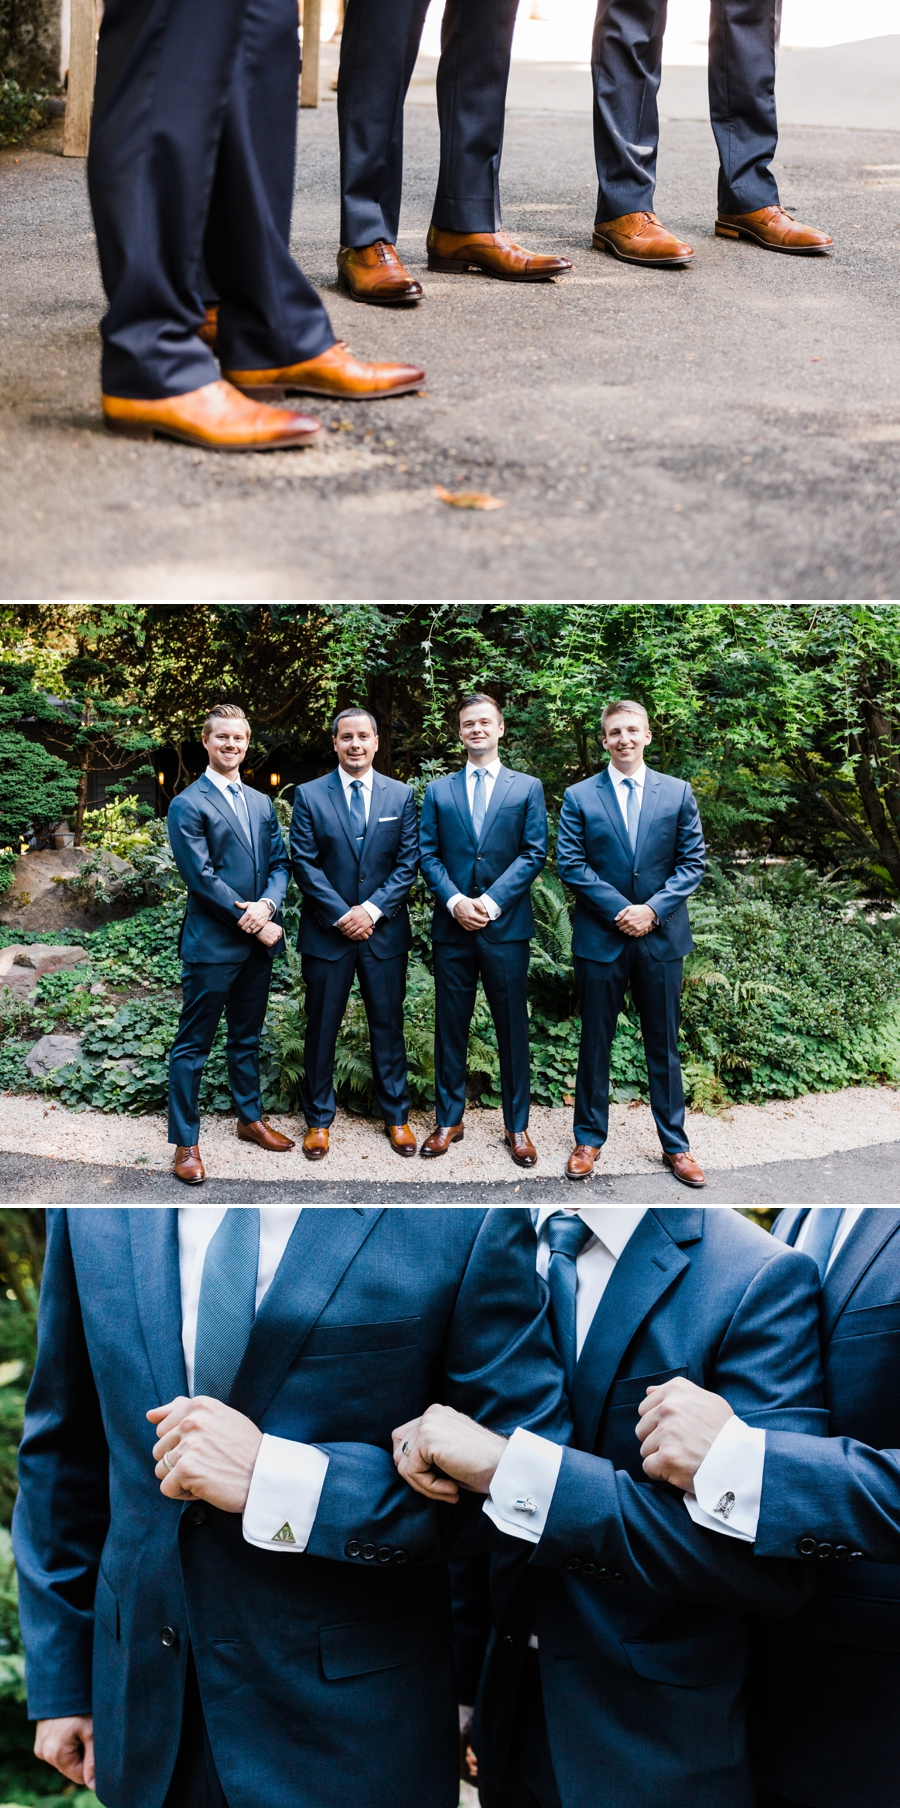 Outdoor Summer Winery Wedding at JM Cellars in Woodinville photographed by Seattle Wedding Photographer Amy Galbraith Photography